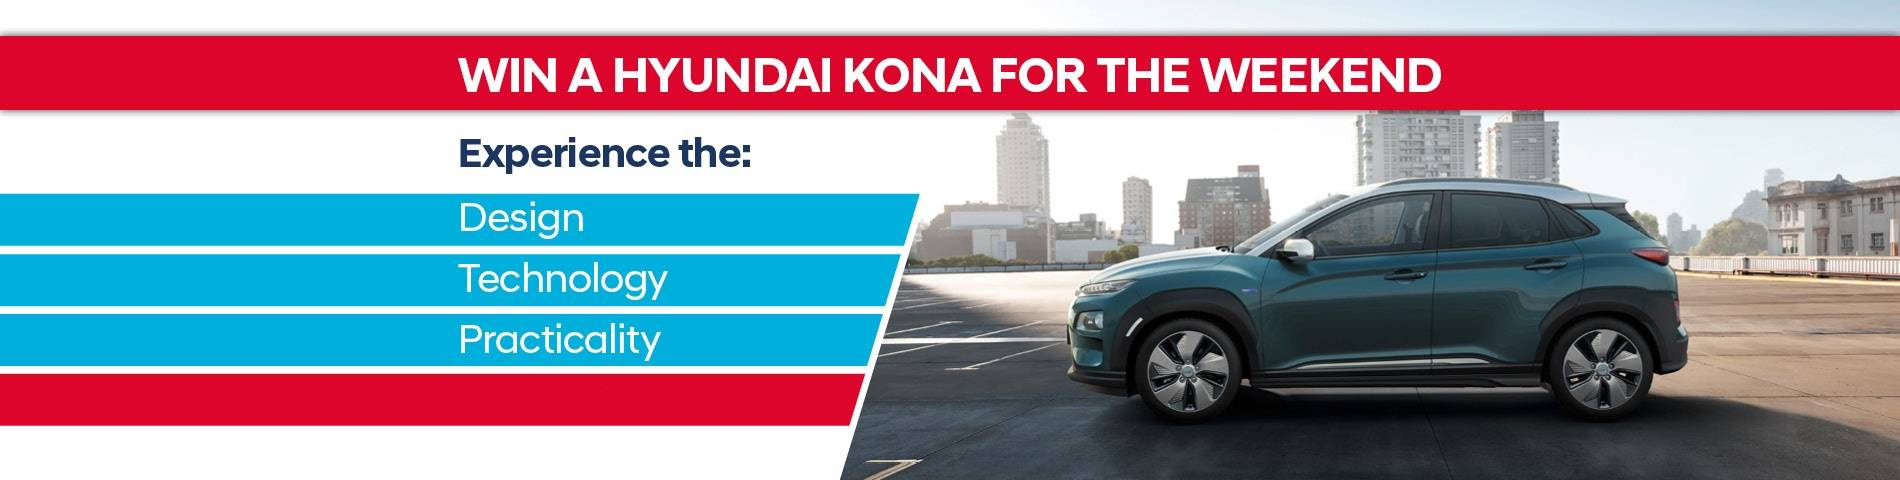 Hyundai Kona Win Weekend Competition